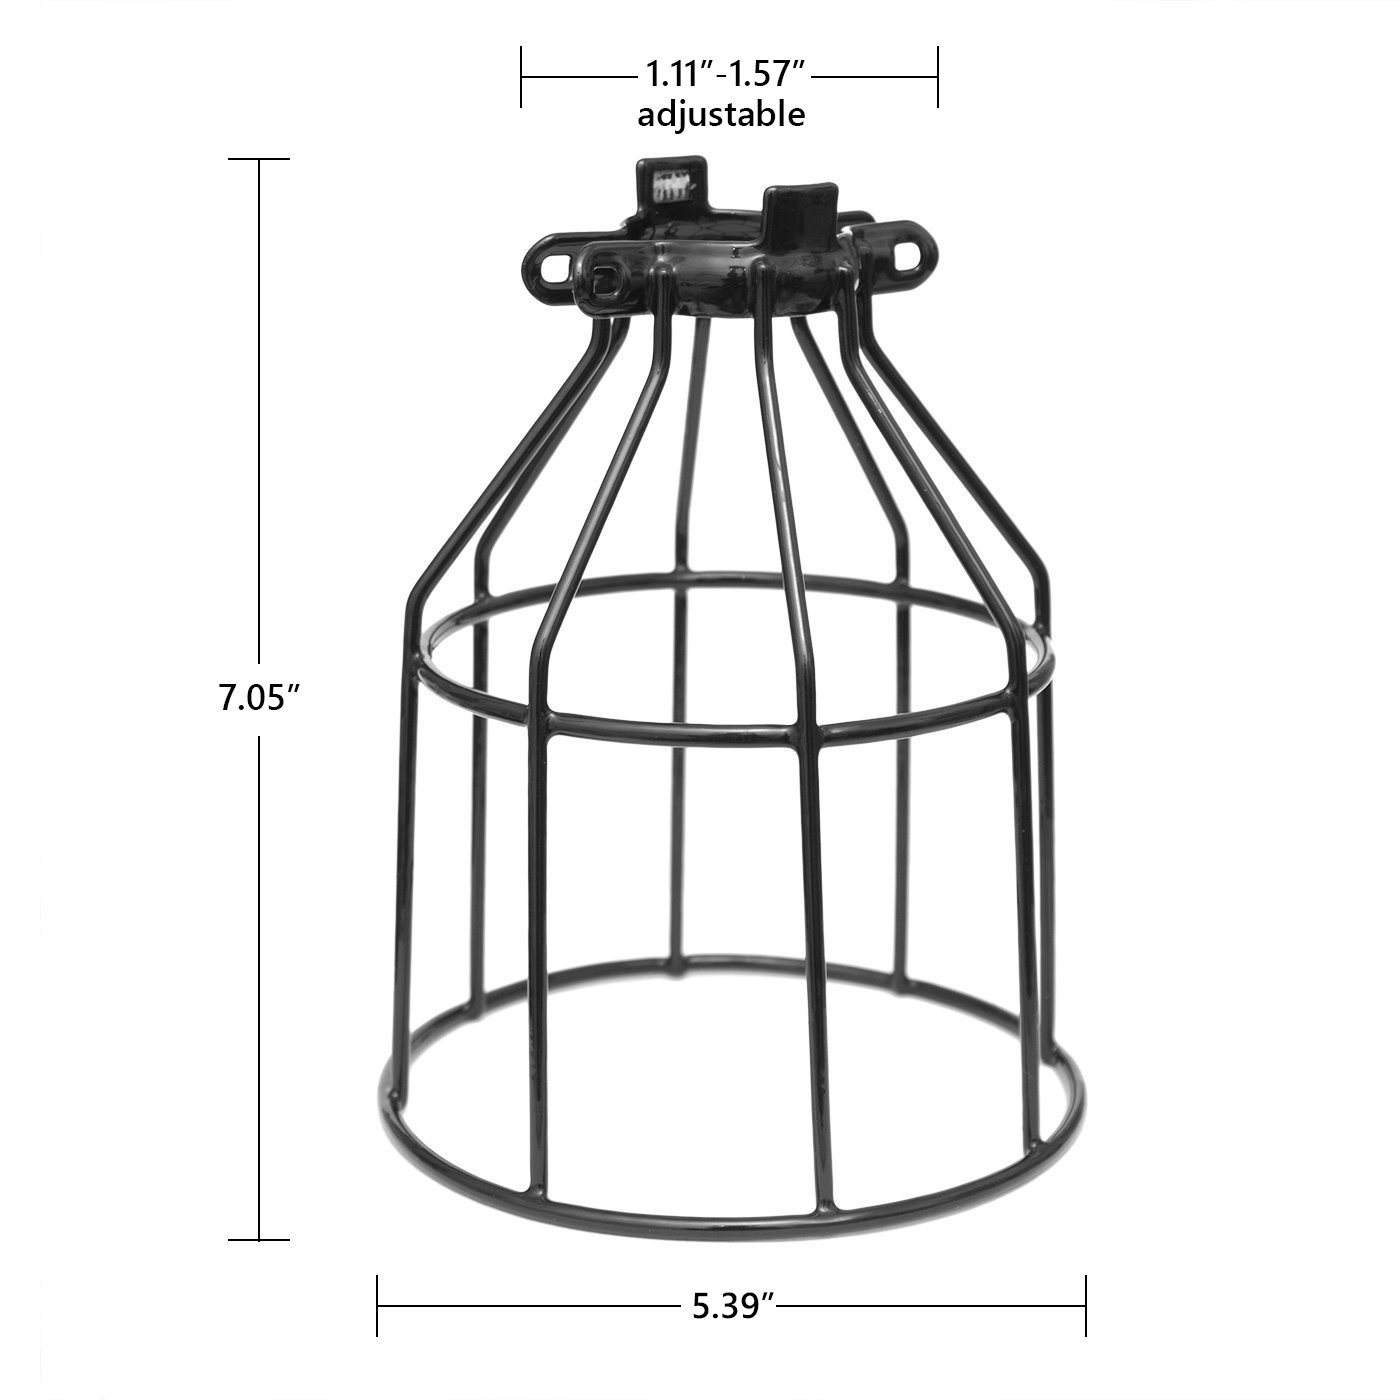 Metal Bulb Guard, Clamp On Steel Lamp Cage for Hanging Pendant Lights, Ceiling Fan Light and Vintage Lamp Holders,Open Style Black Industrial Wire Iron Bird Cage,4-Pack, by Seaside Village by Seaside village (Image #2)